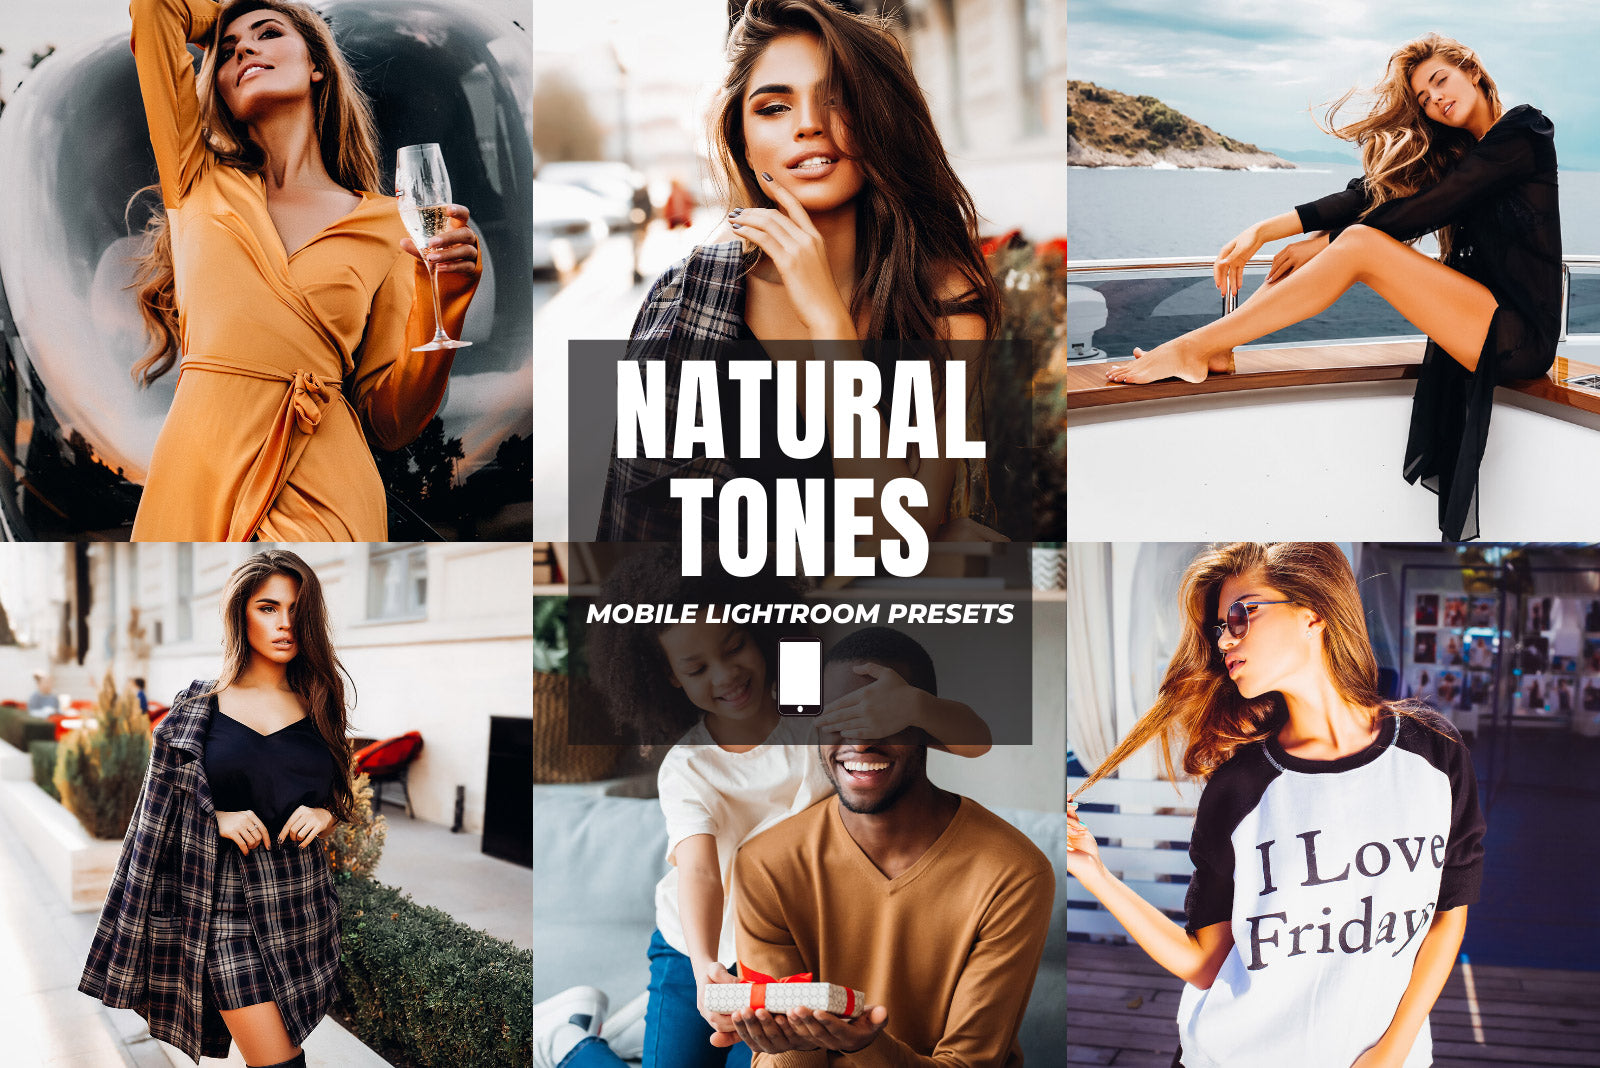 NATURAL TONES MOBILE LIGHTROOM PRESETS by The Viral Presets